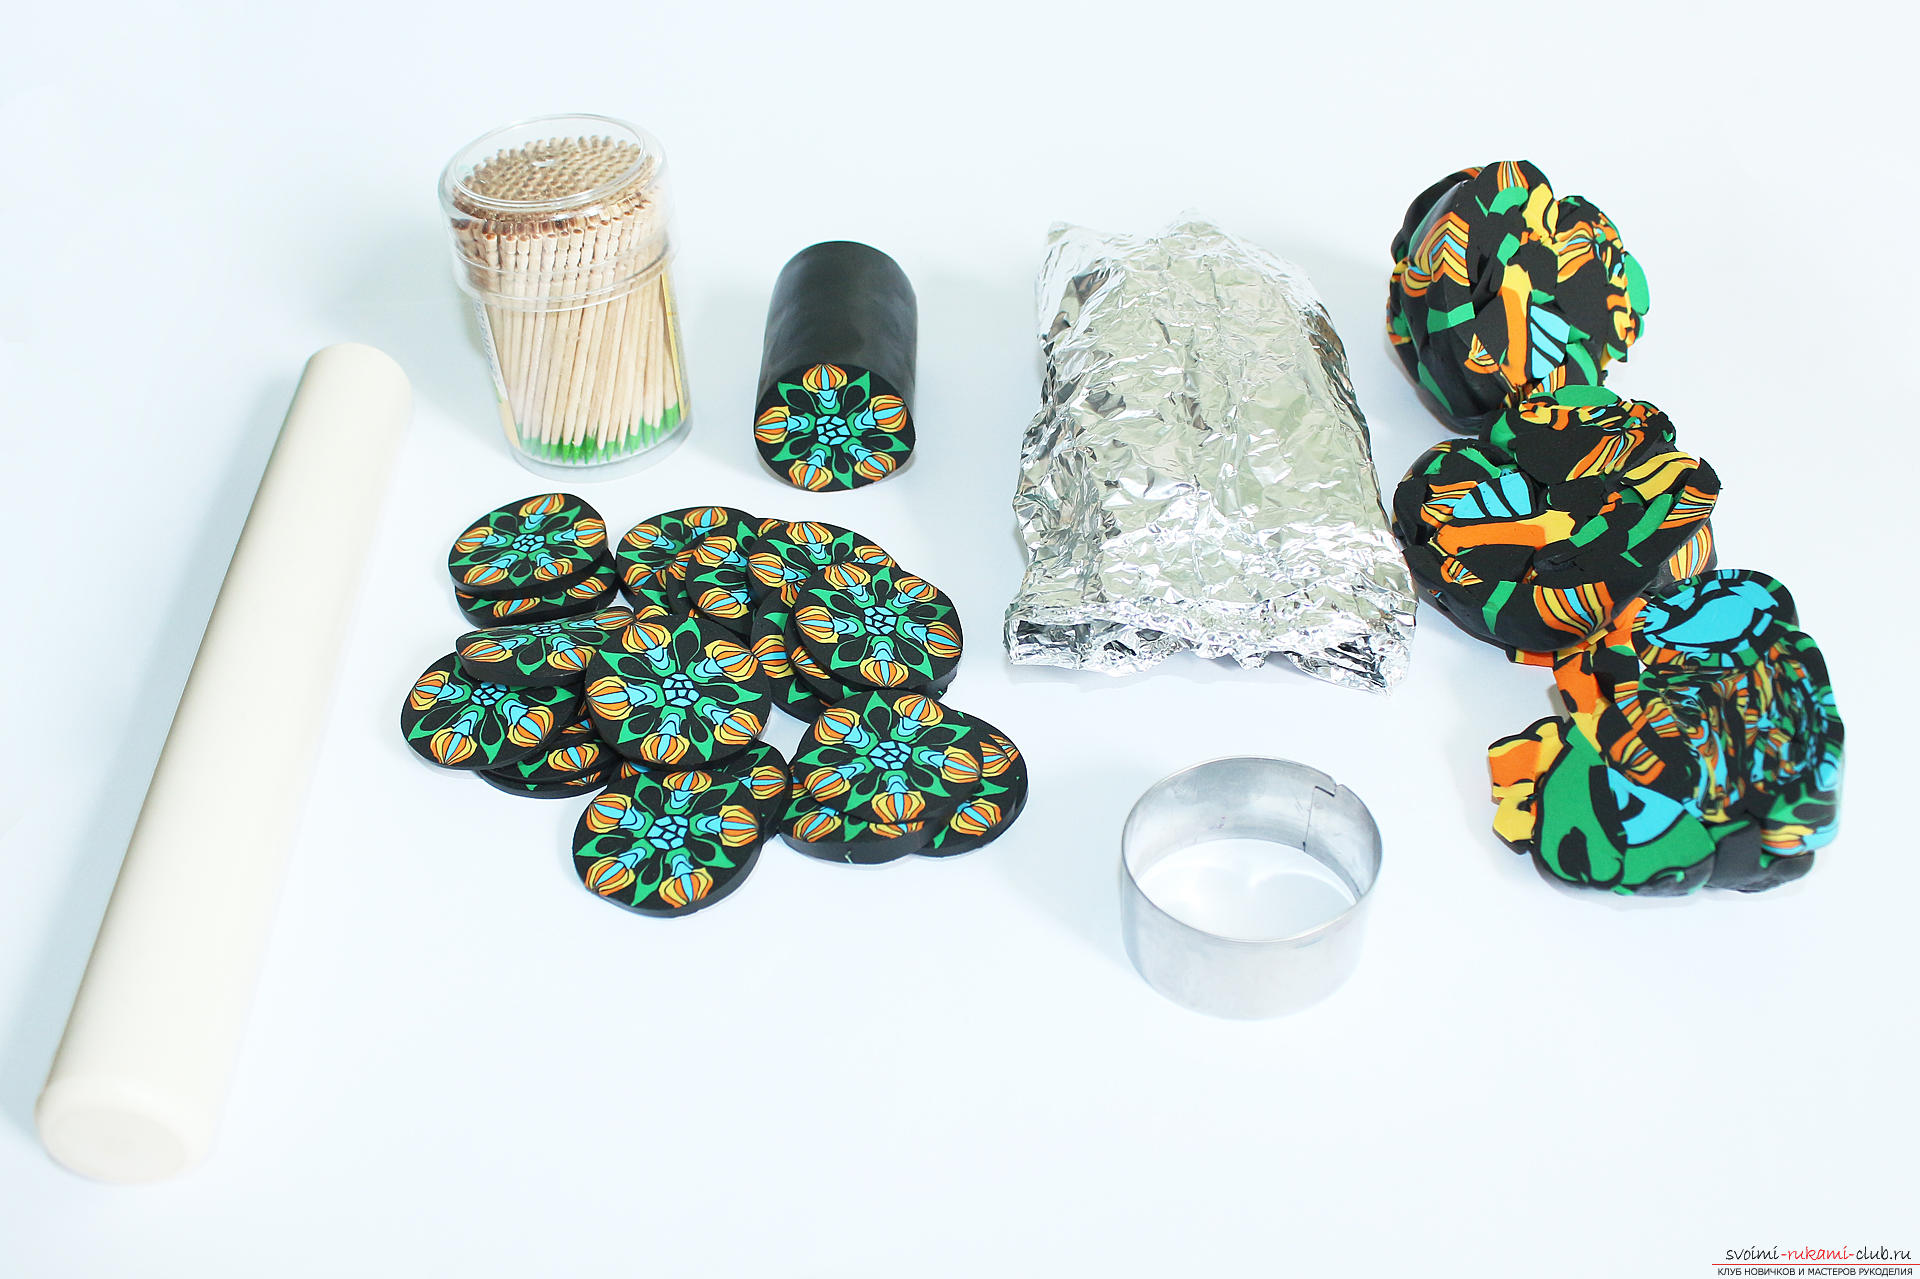 This detailed master class contains techniques for working with polymer clay and will teach you how to make a kein and beads made of polymer clay. Photo # 43